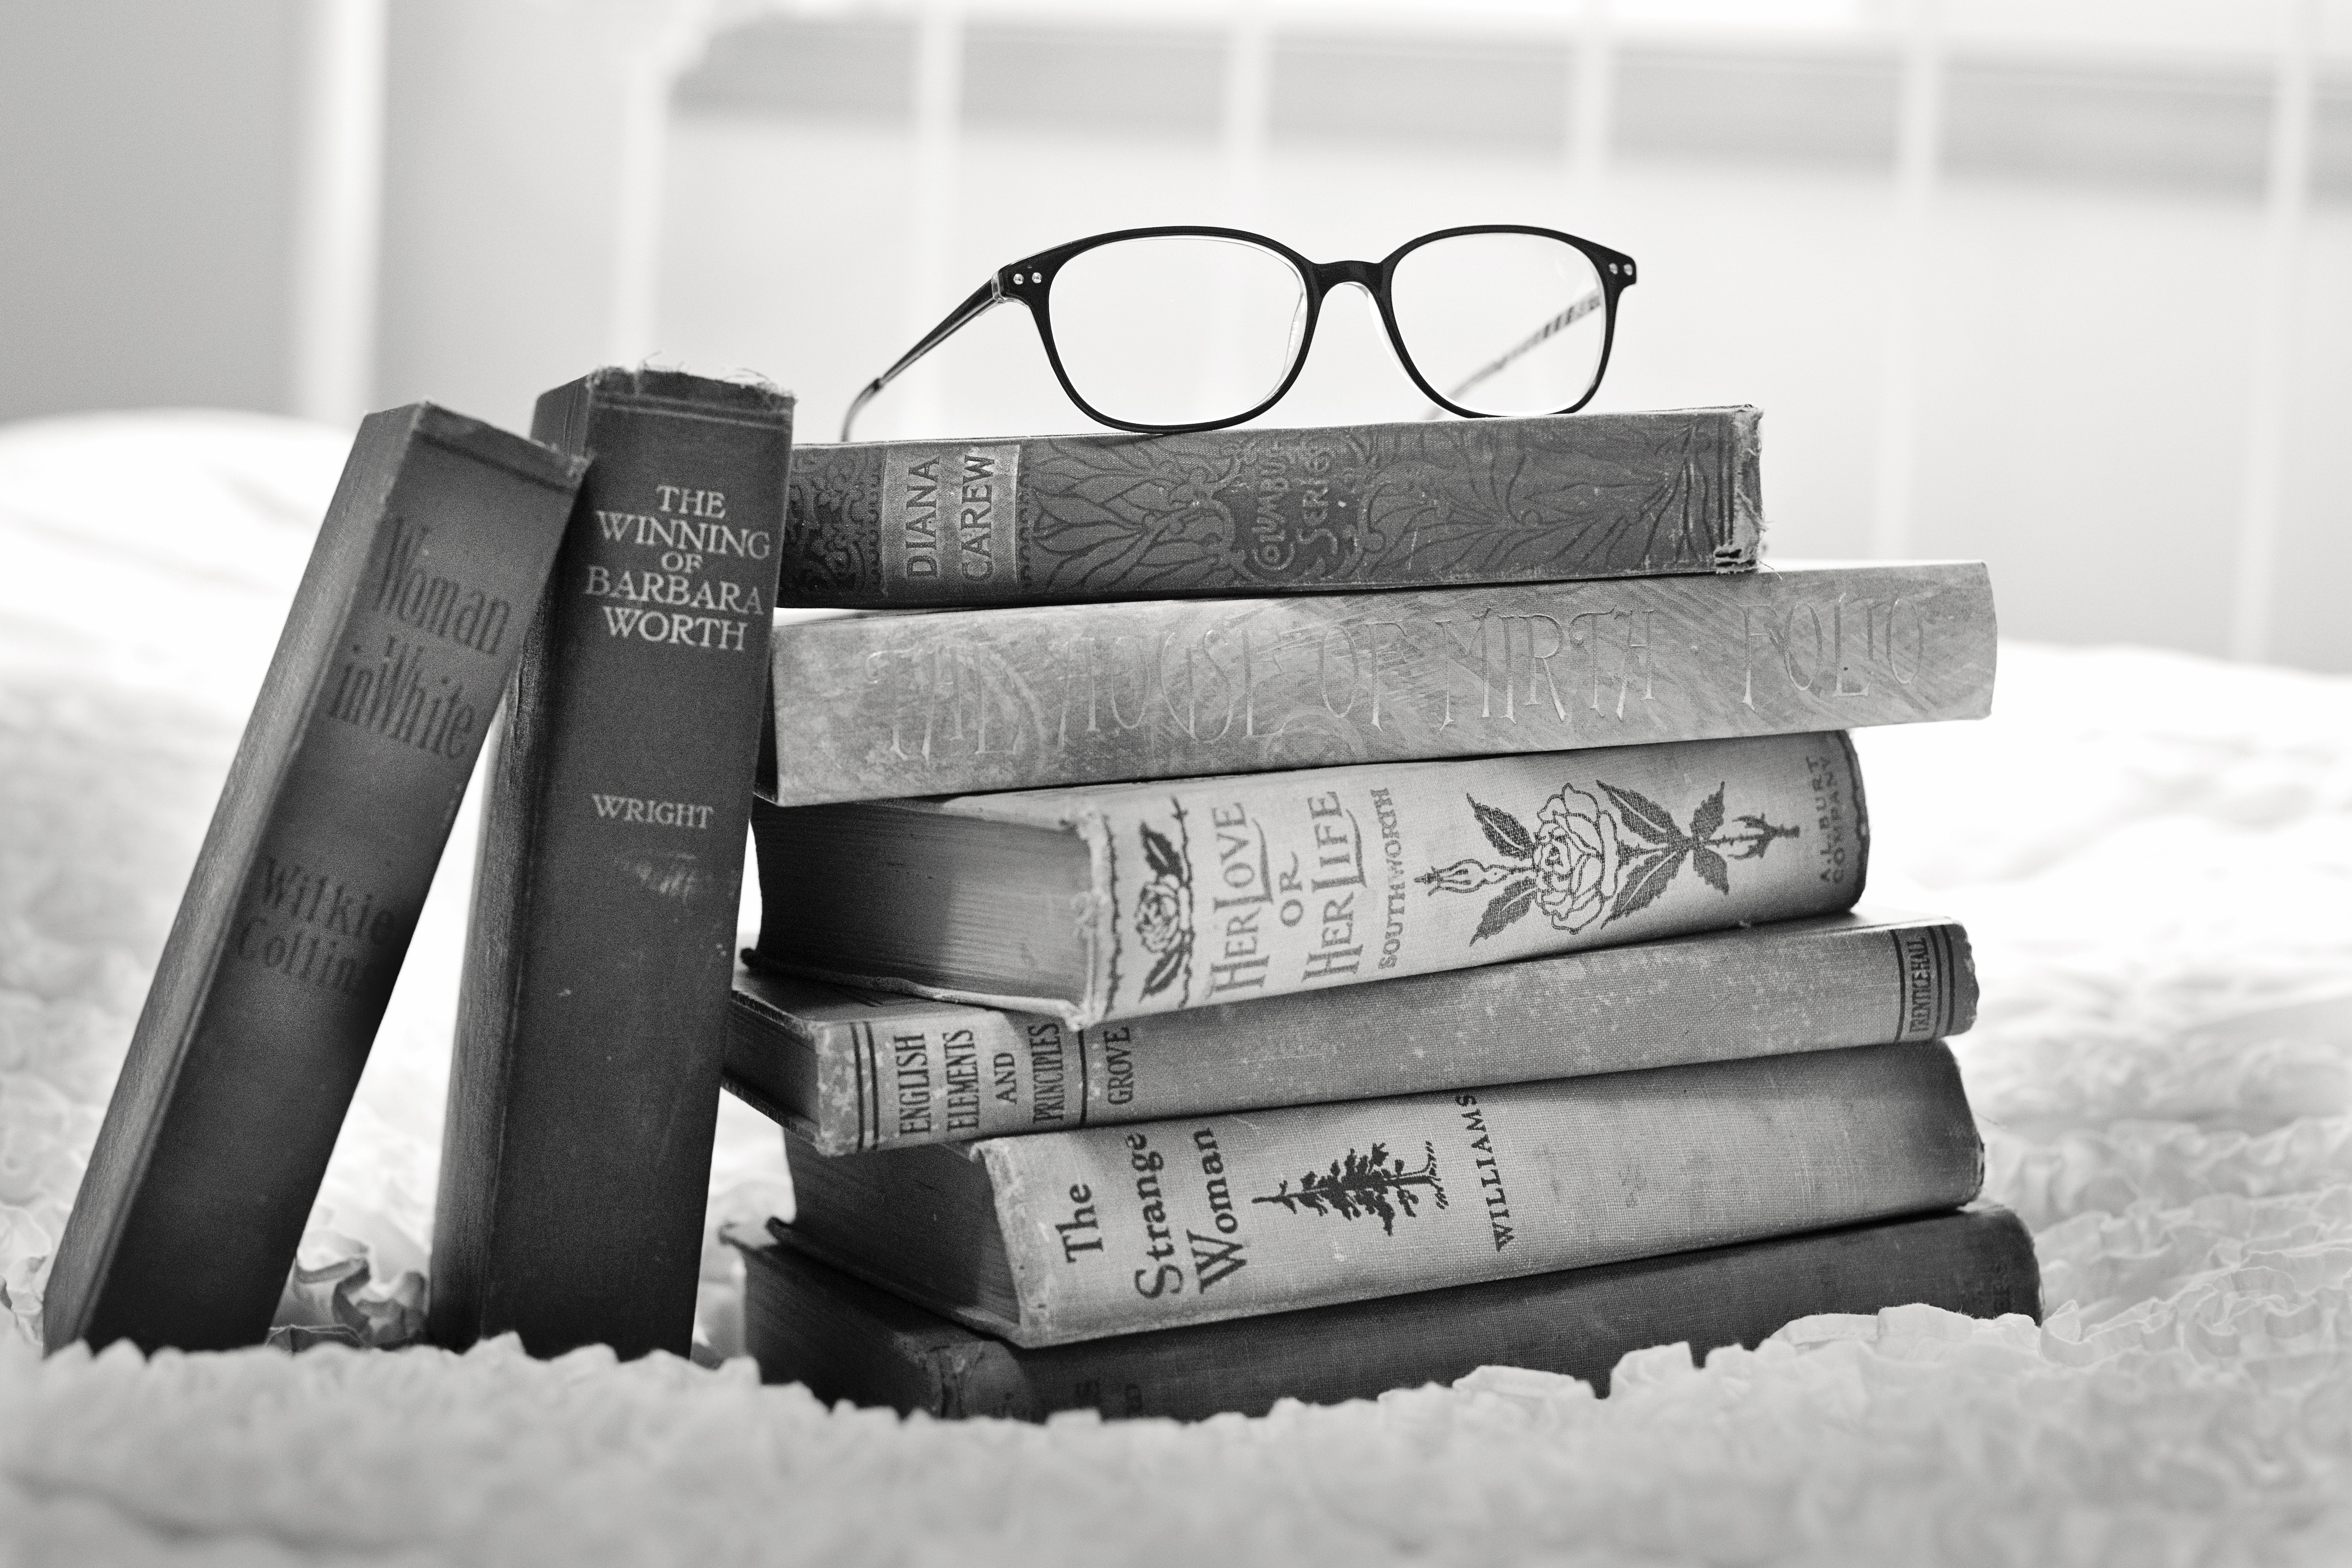 Grayscale Photo of Eyeglasses on Pile of Books · Free Stock